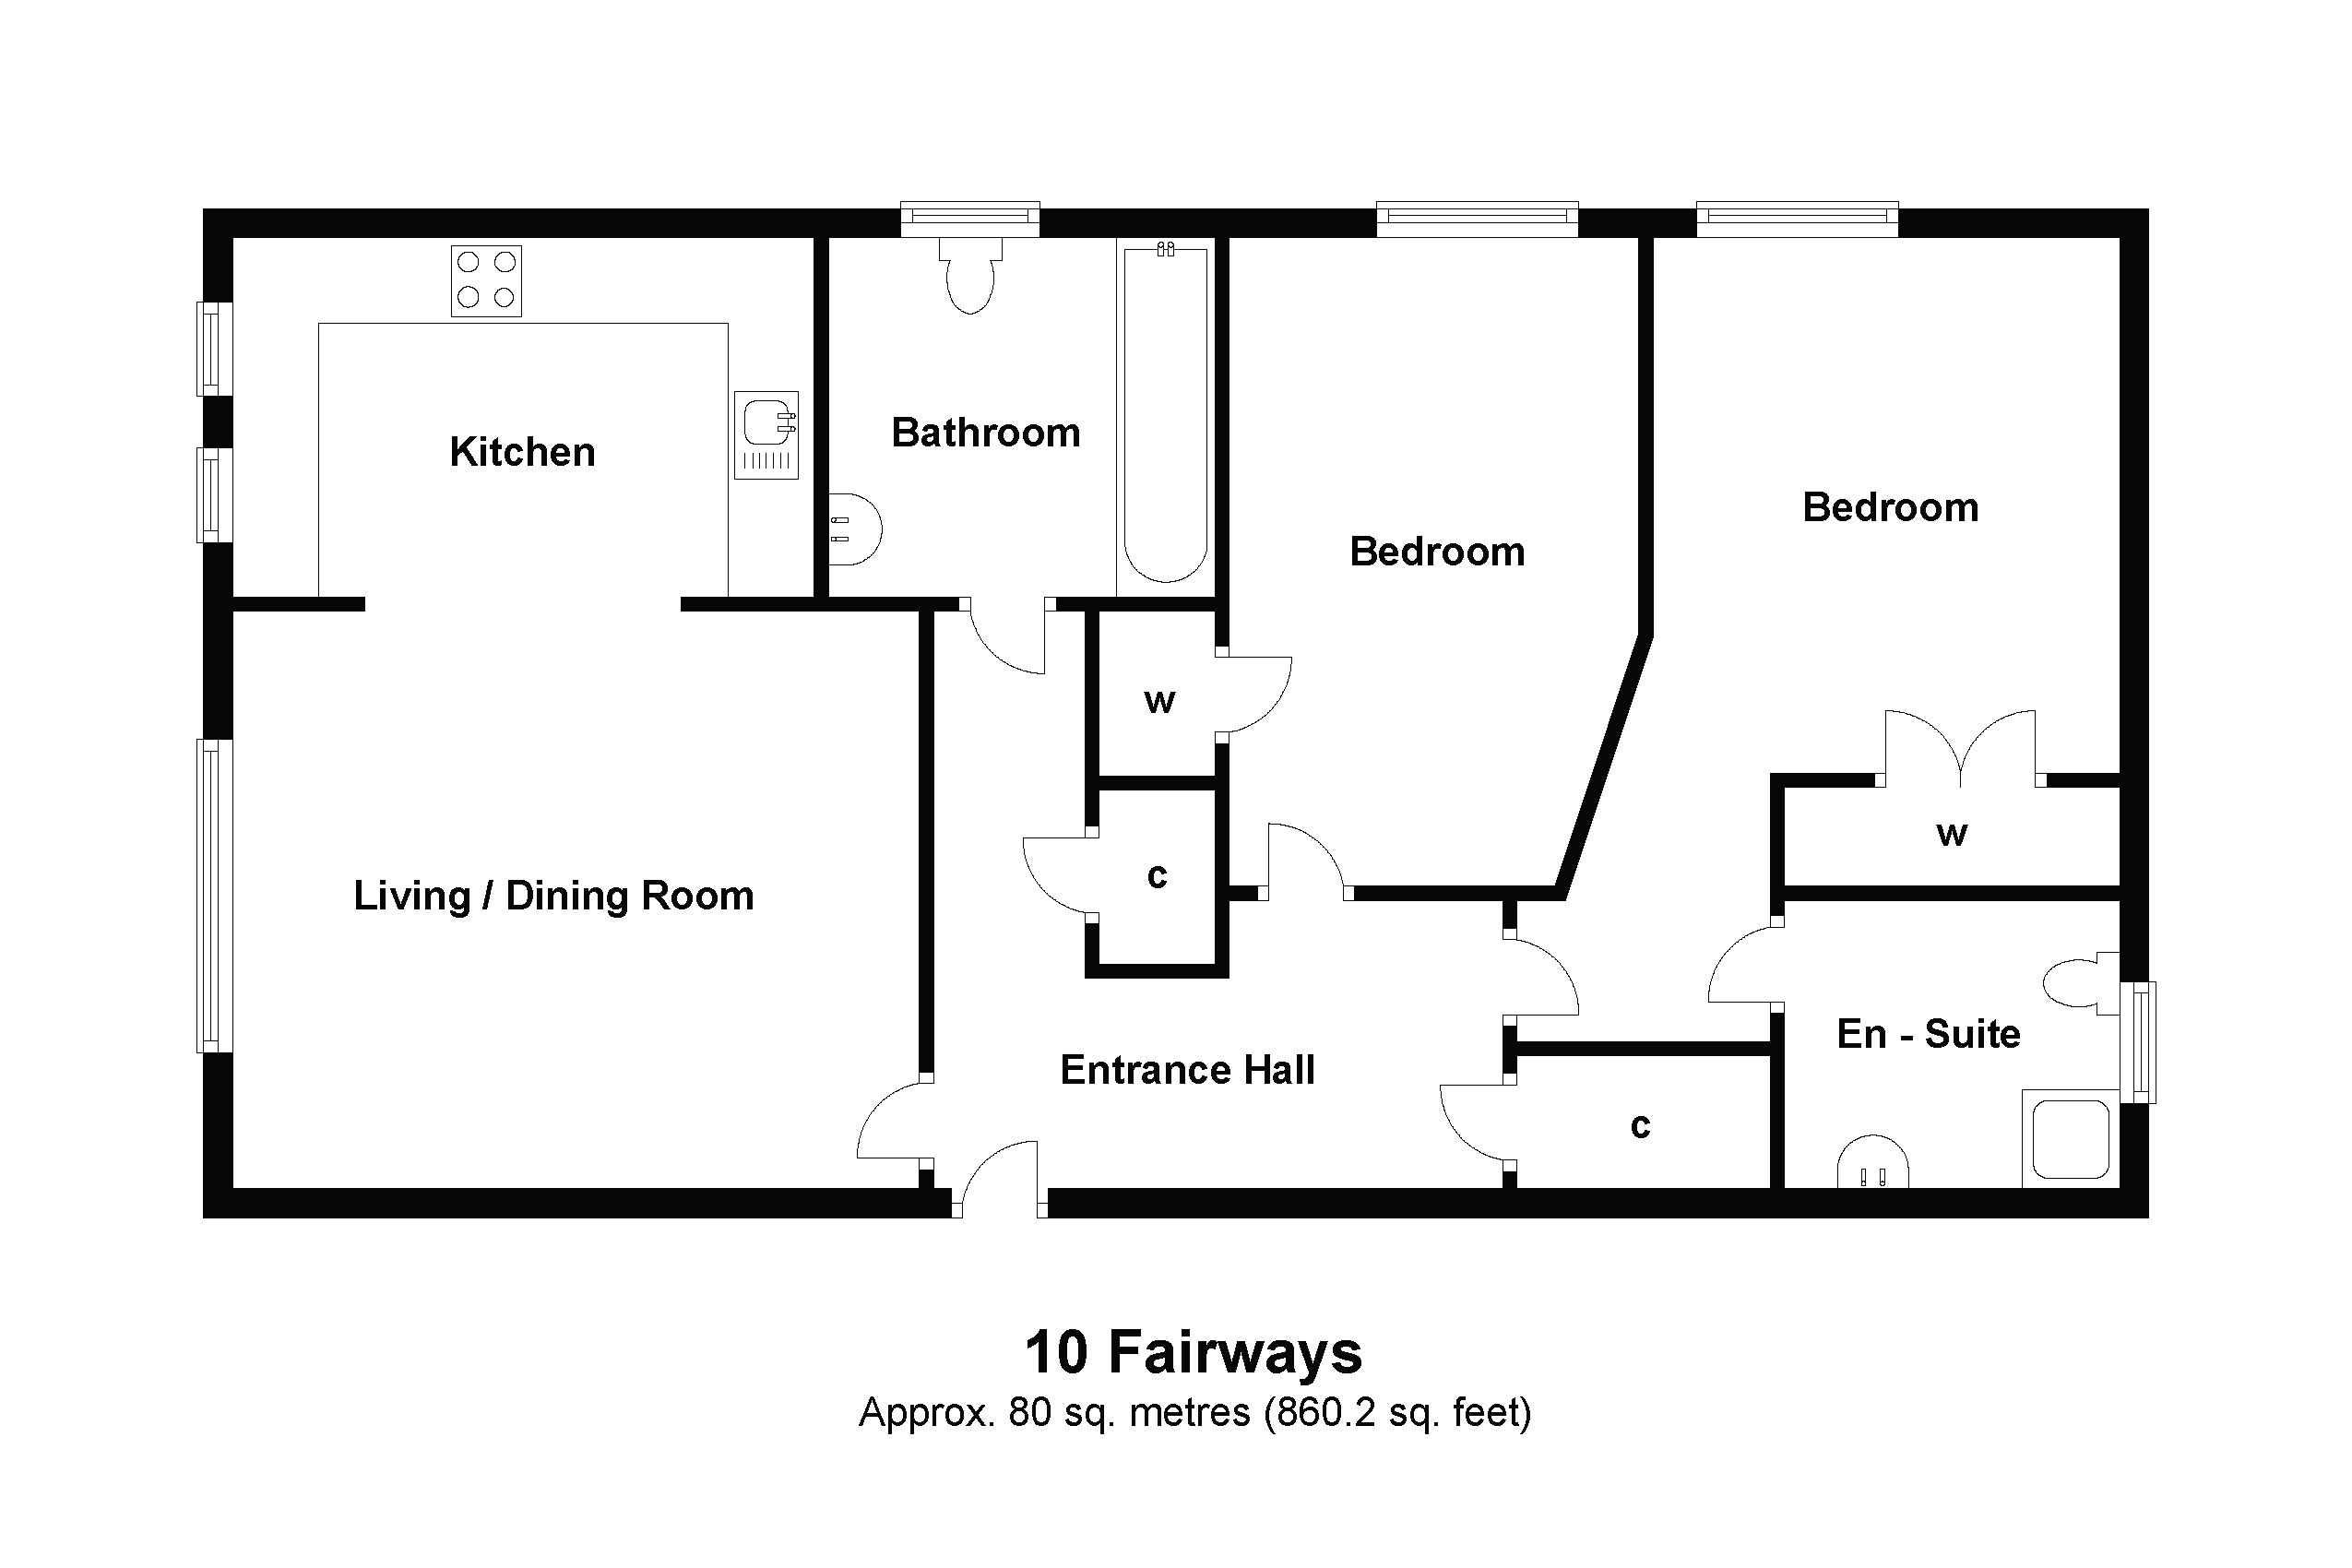 10 The Fairways Floorplan